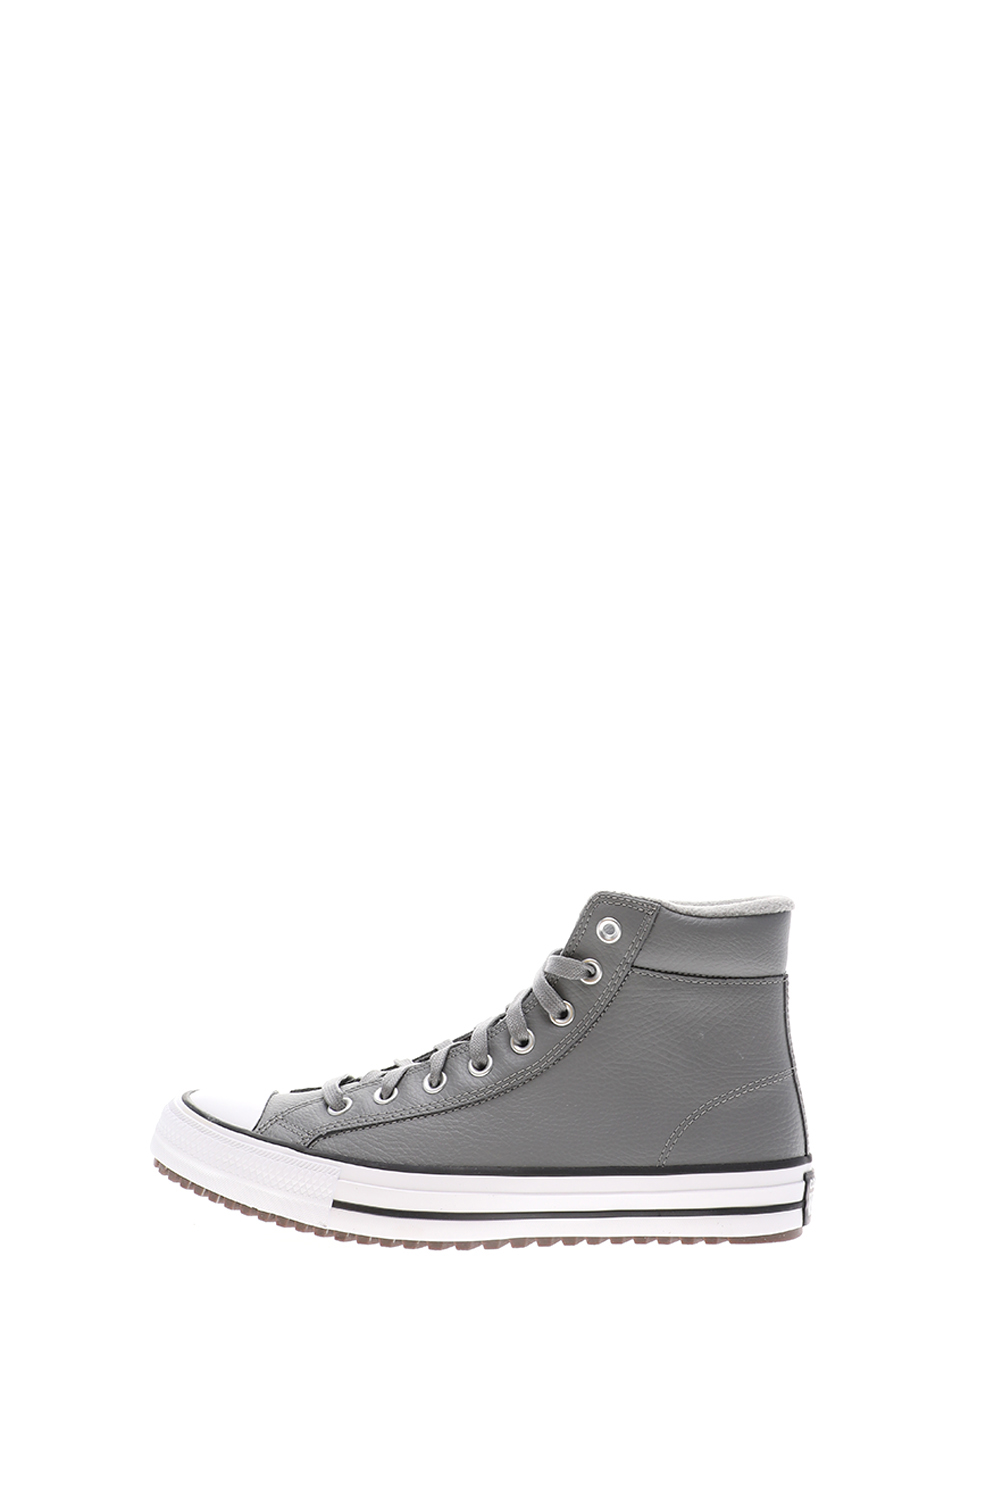 CONVERSE – Unisex sneakers CONVERSE Chuck Taylor All Star Boot PC γκρί